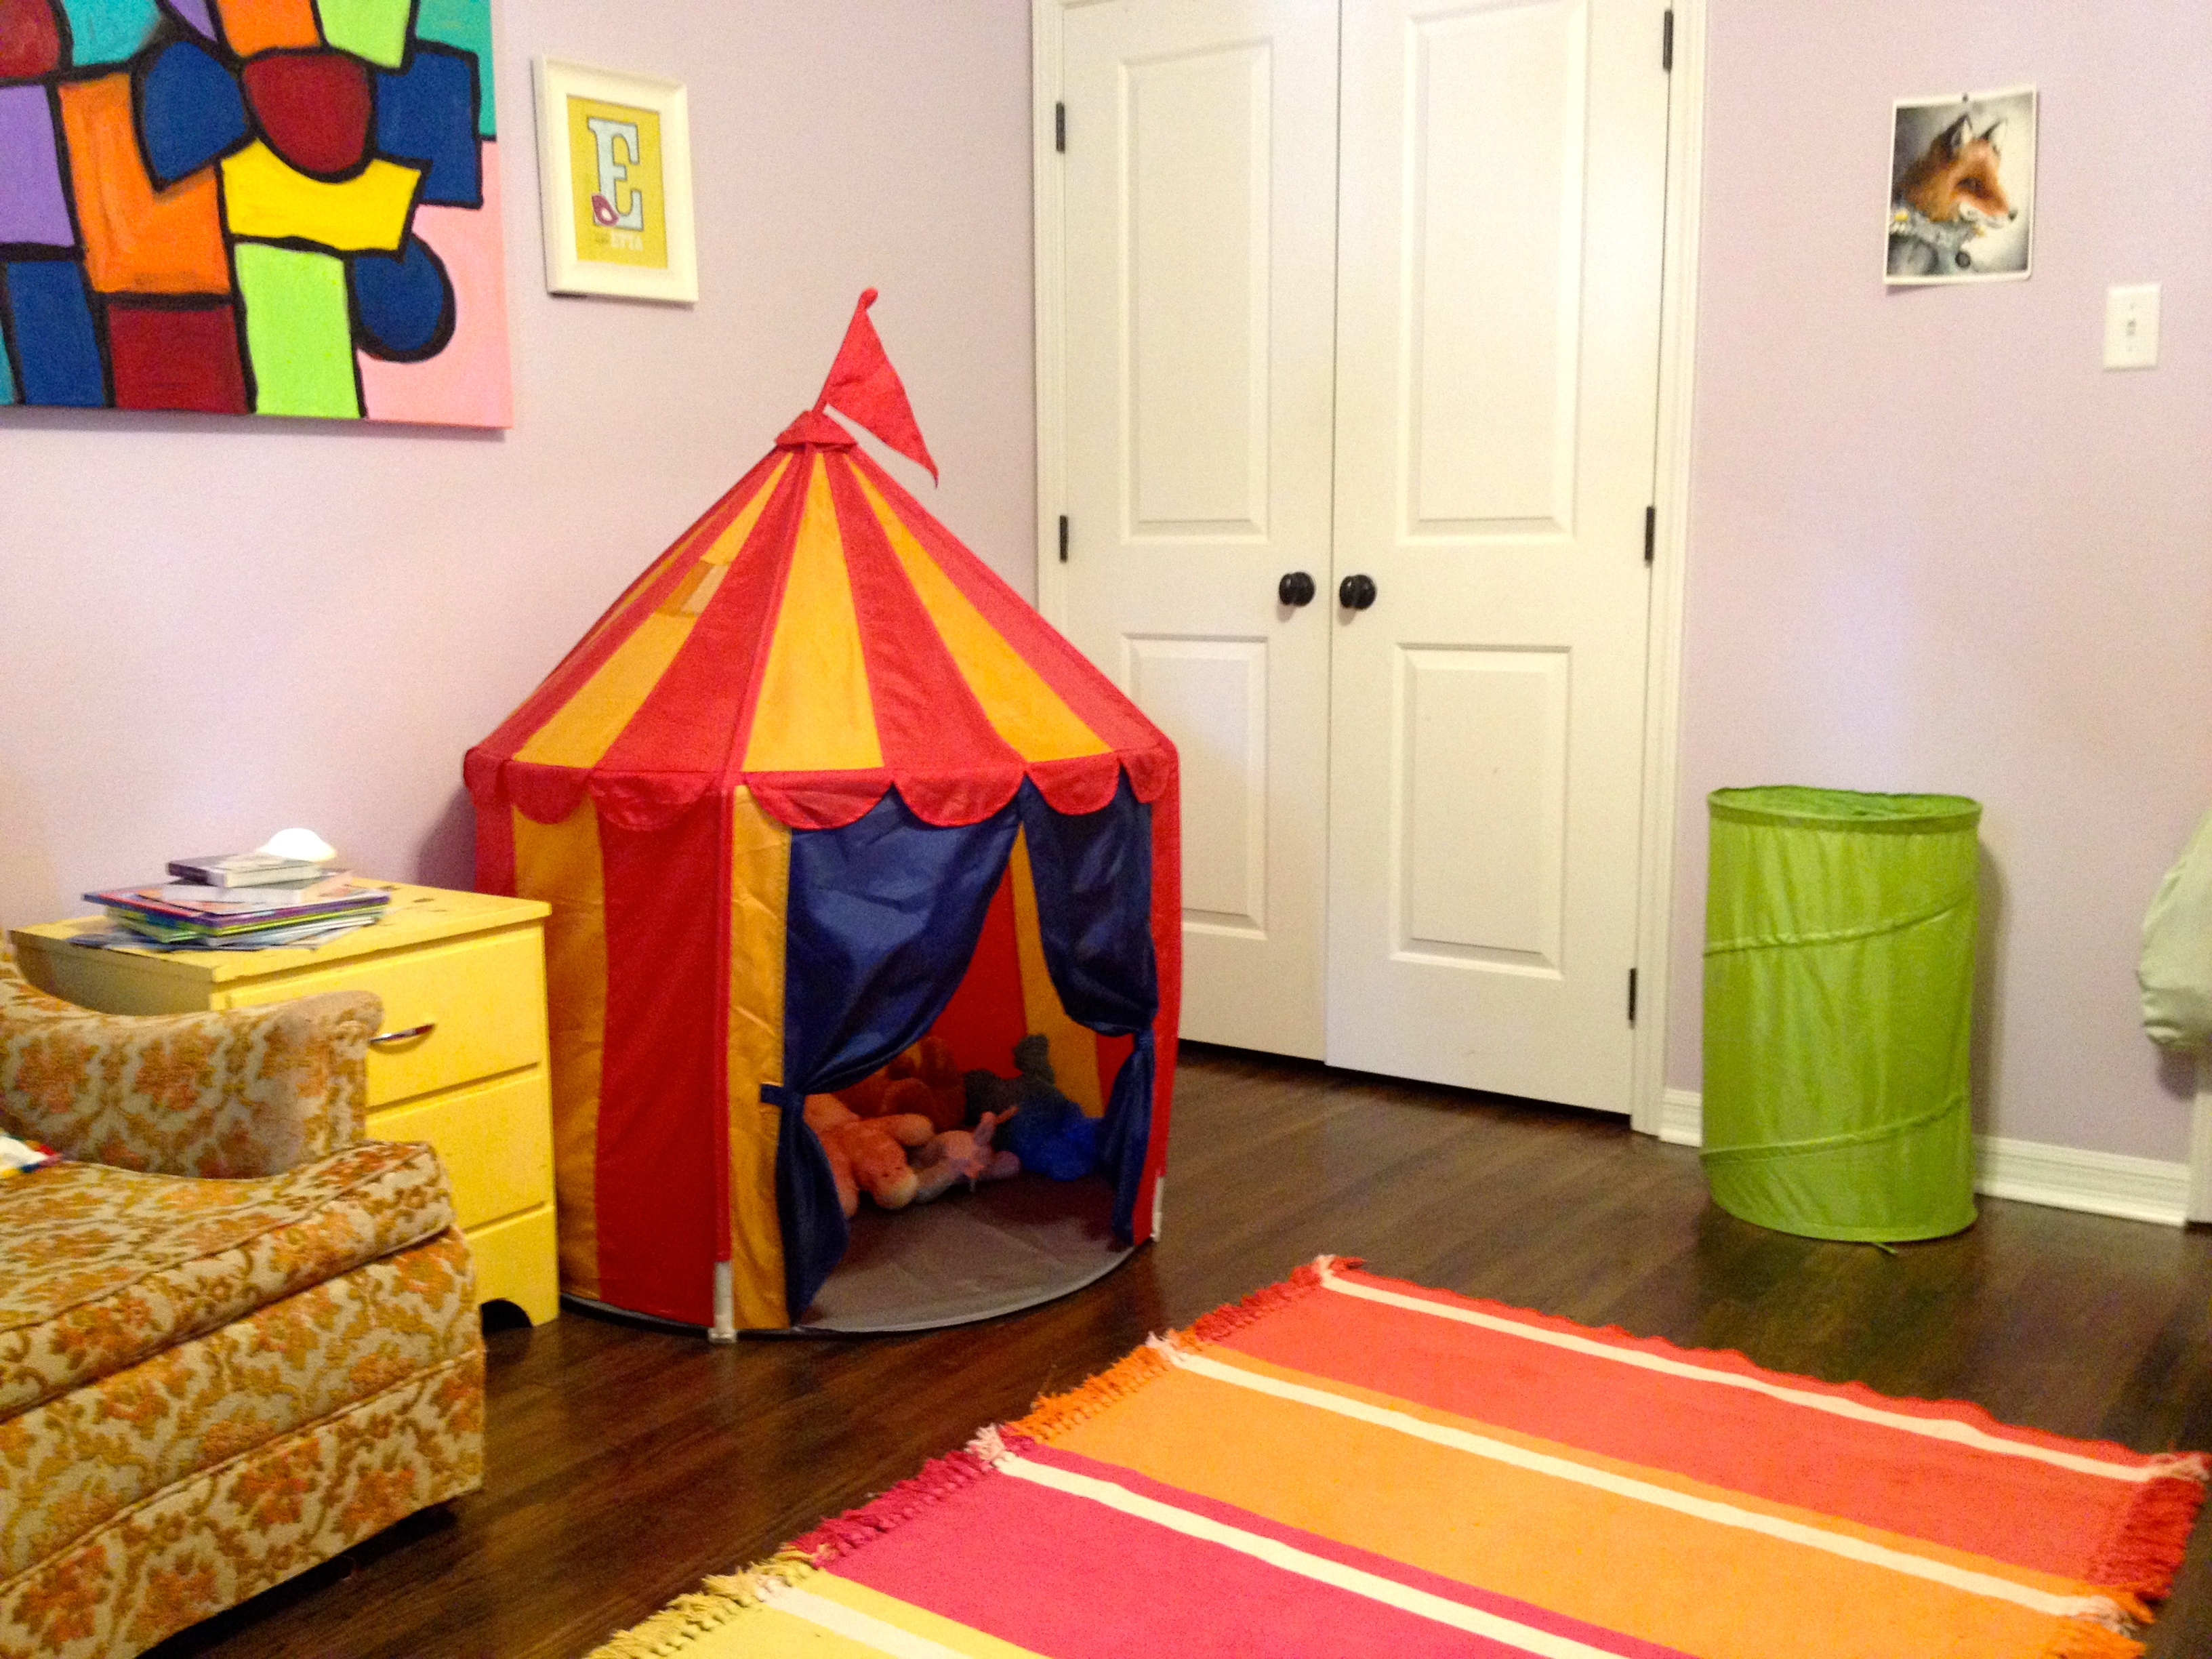 The Ikea circus tent makes a great storage zone for stuffed animals. Their dresser is & design cred? | the adventures of ernie bufflo